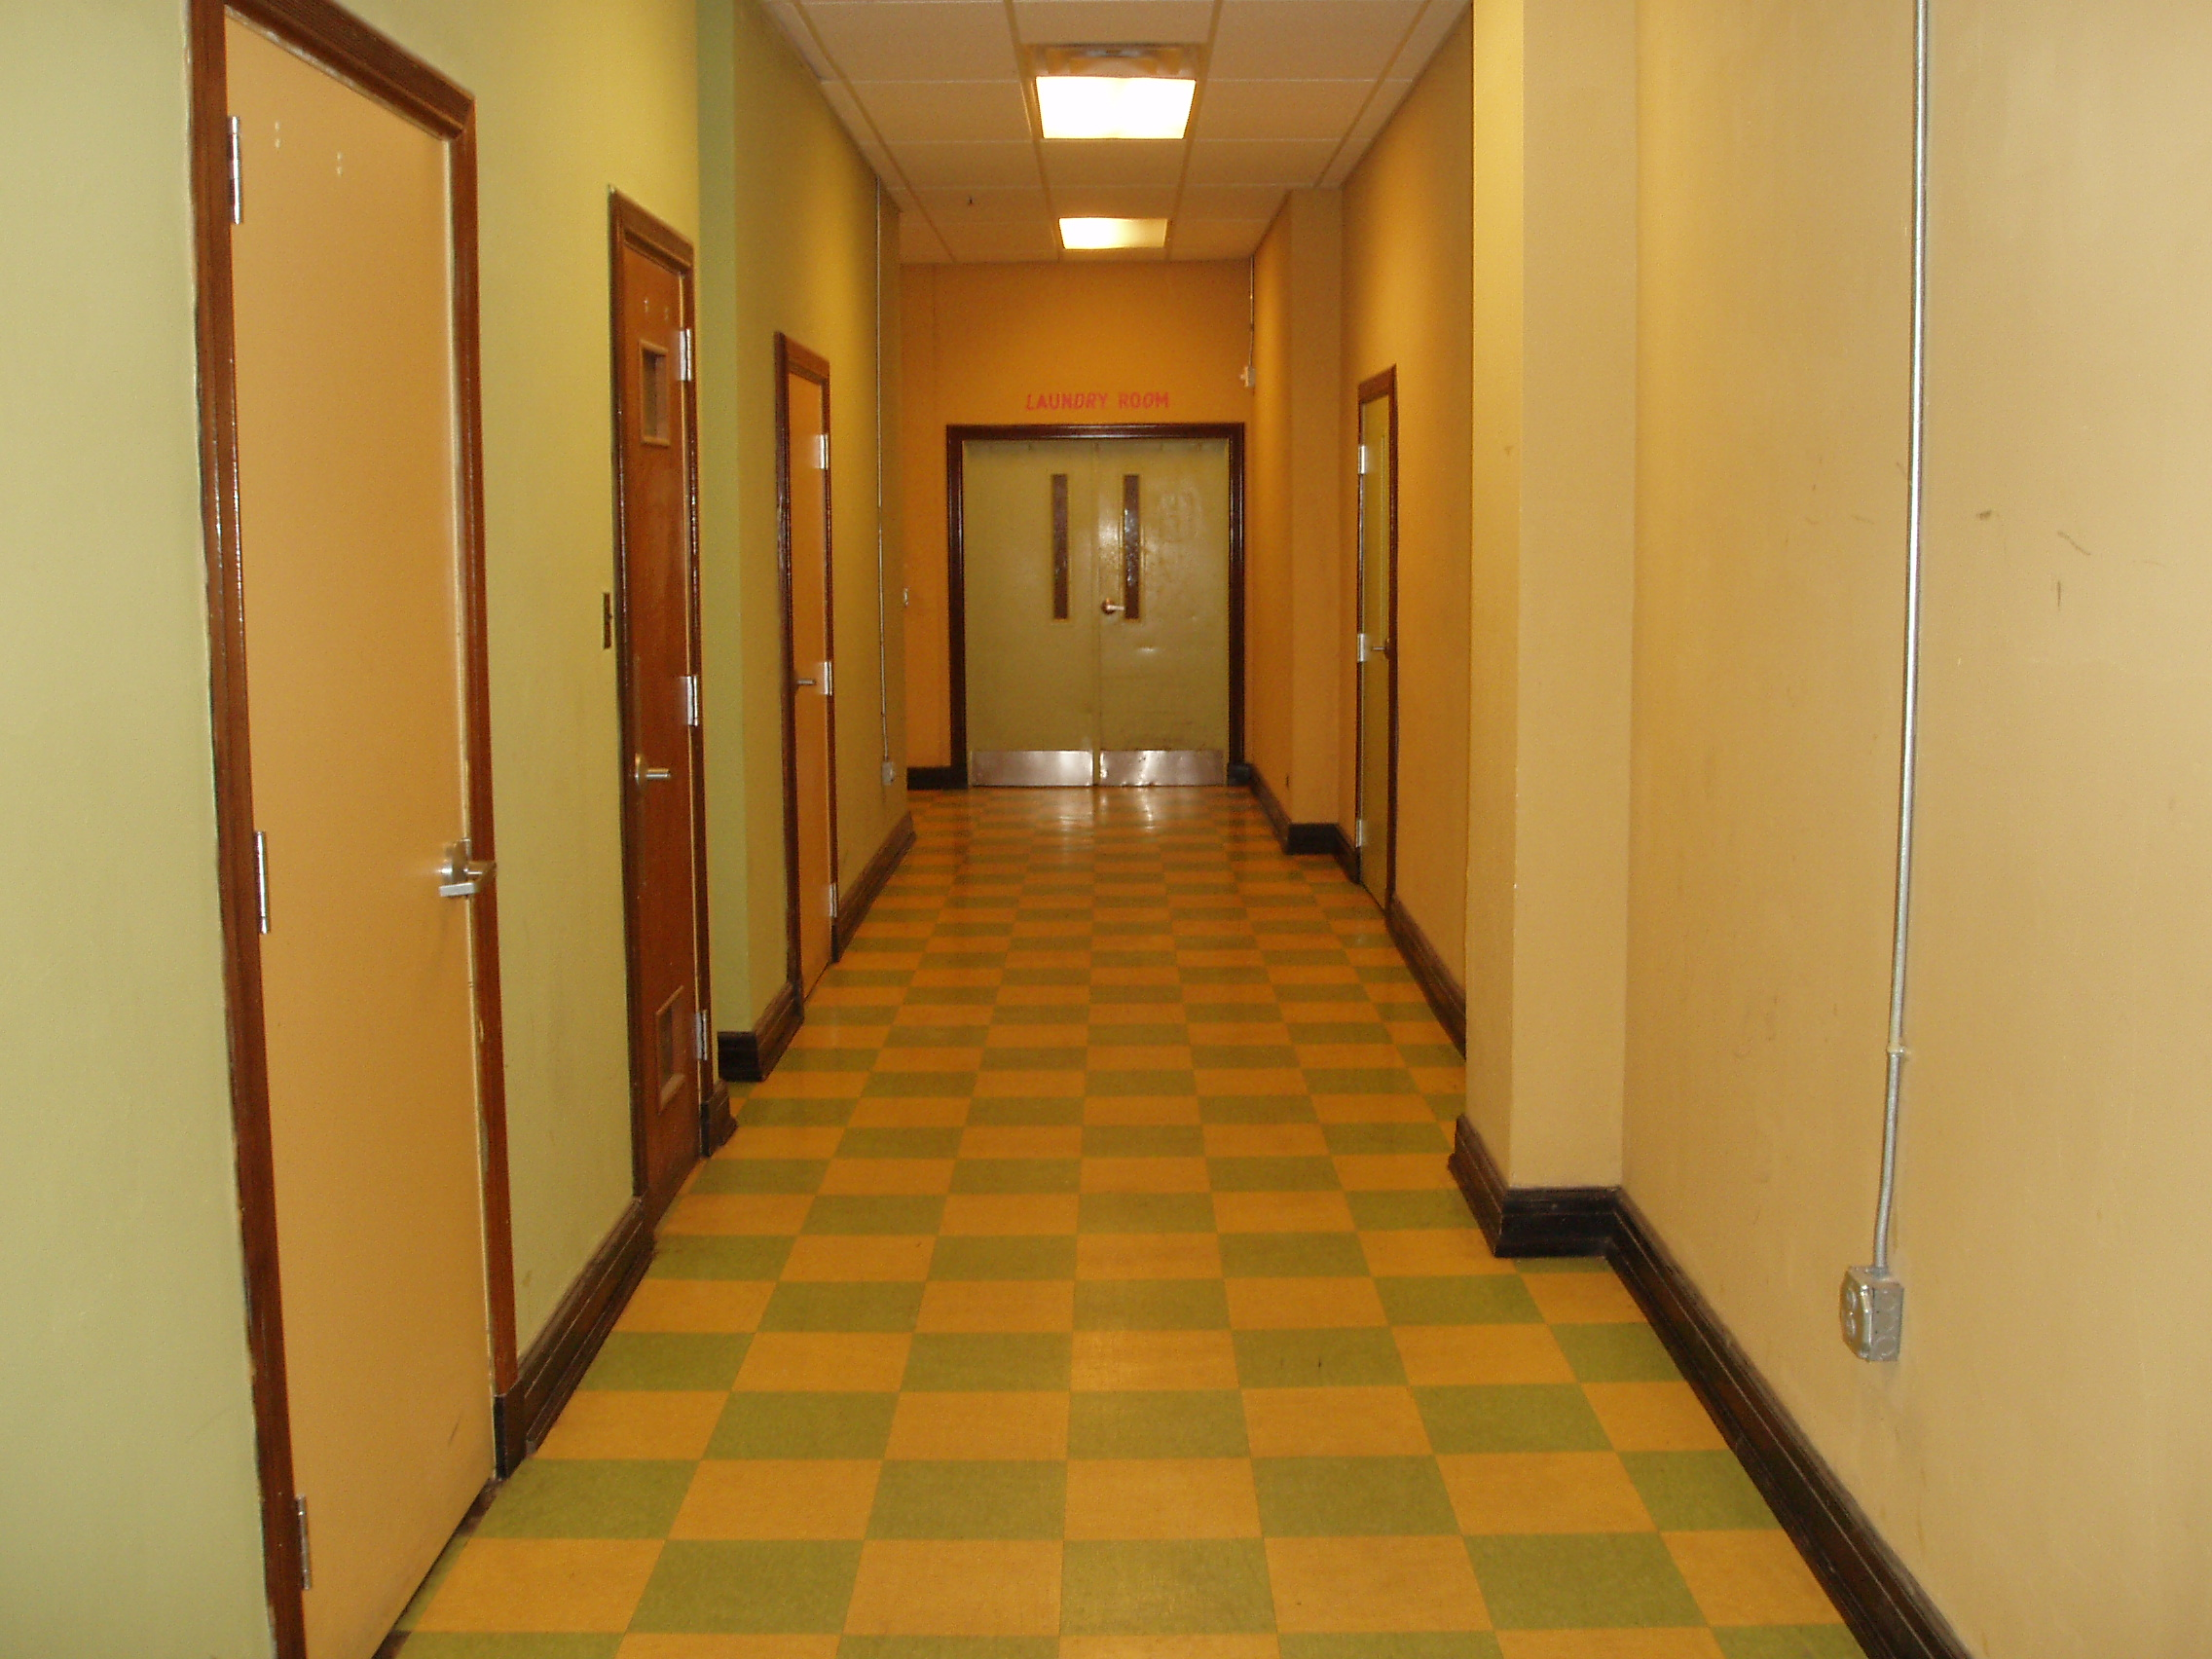 Retro style design hallways at Phoenix Lofts Birmingham, AL 35203